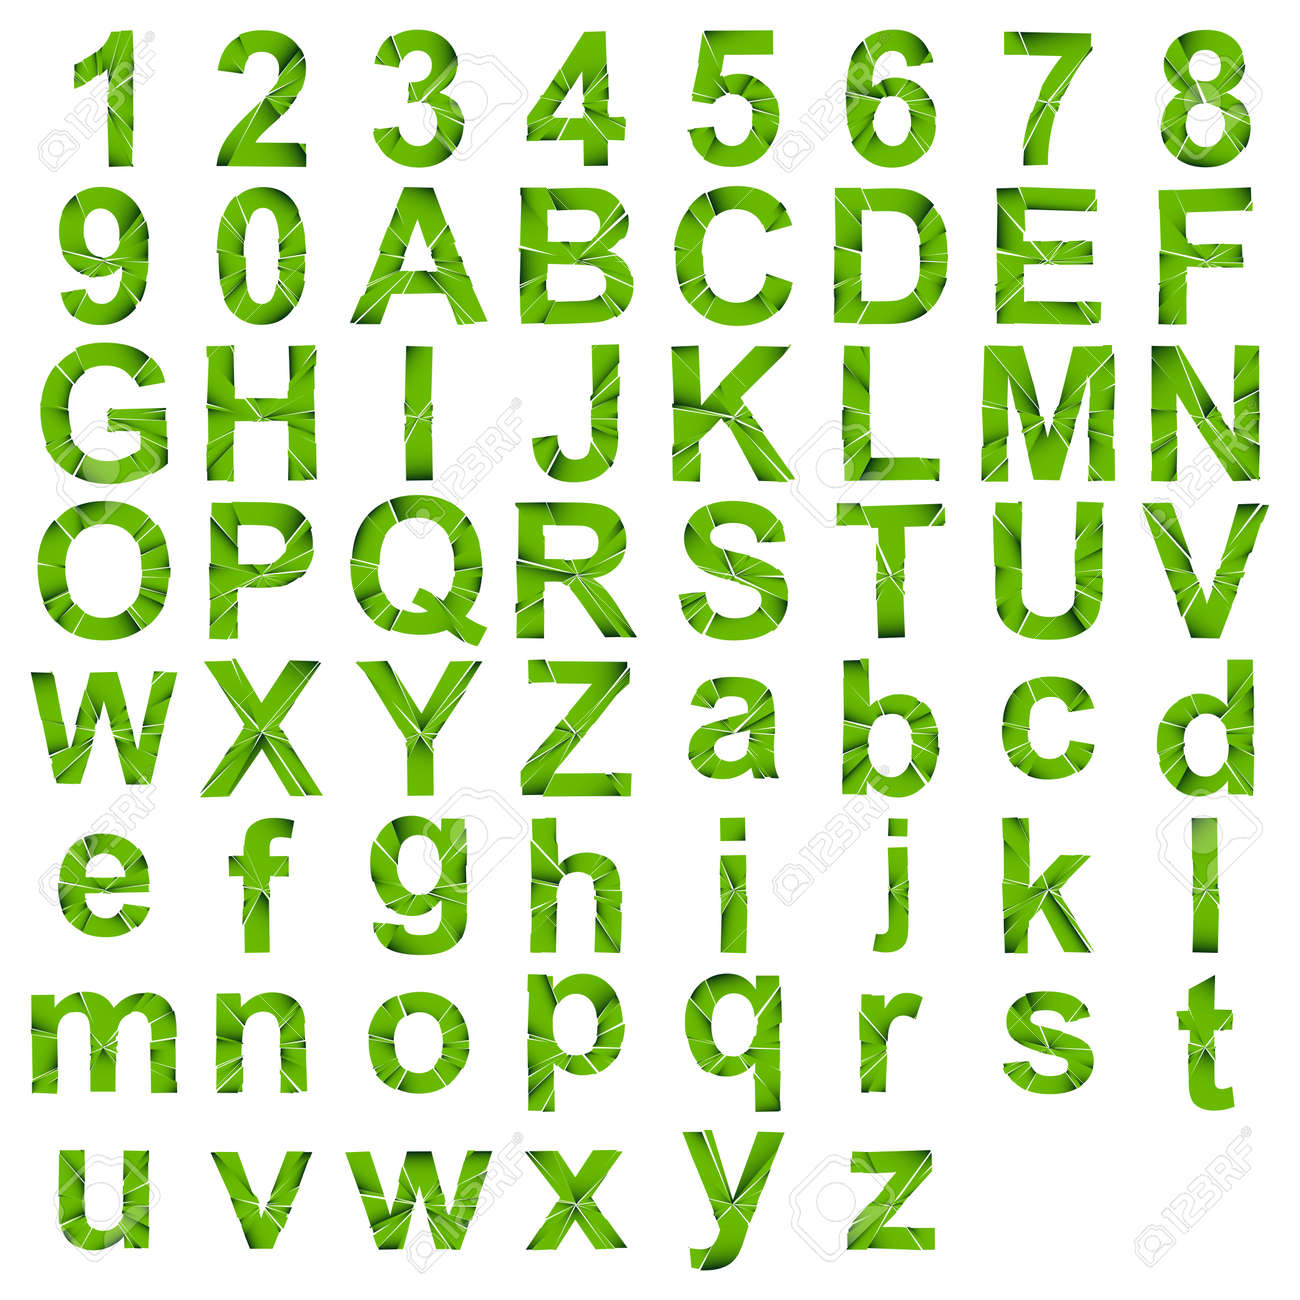 Full English alphabet - ABC in lower- and uppercase with cracked, fracture, shatter effect - 167610381